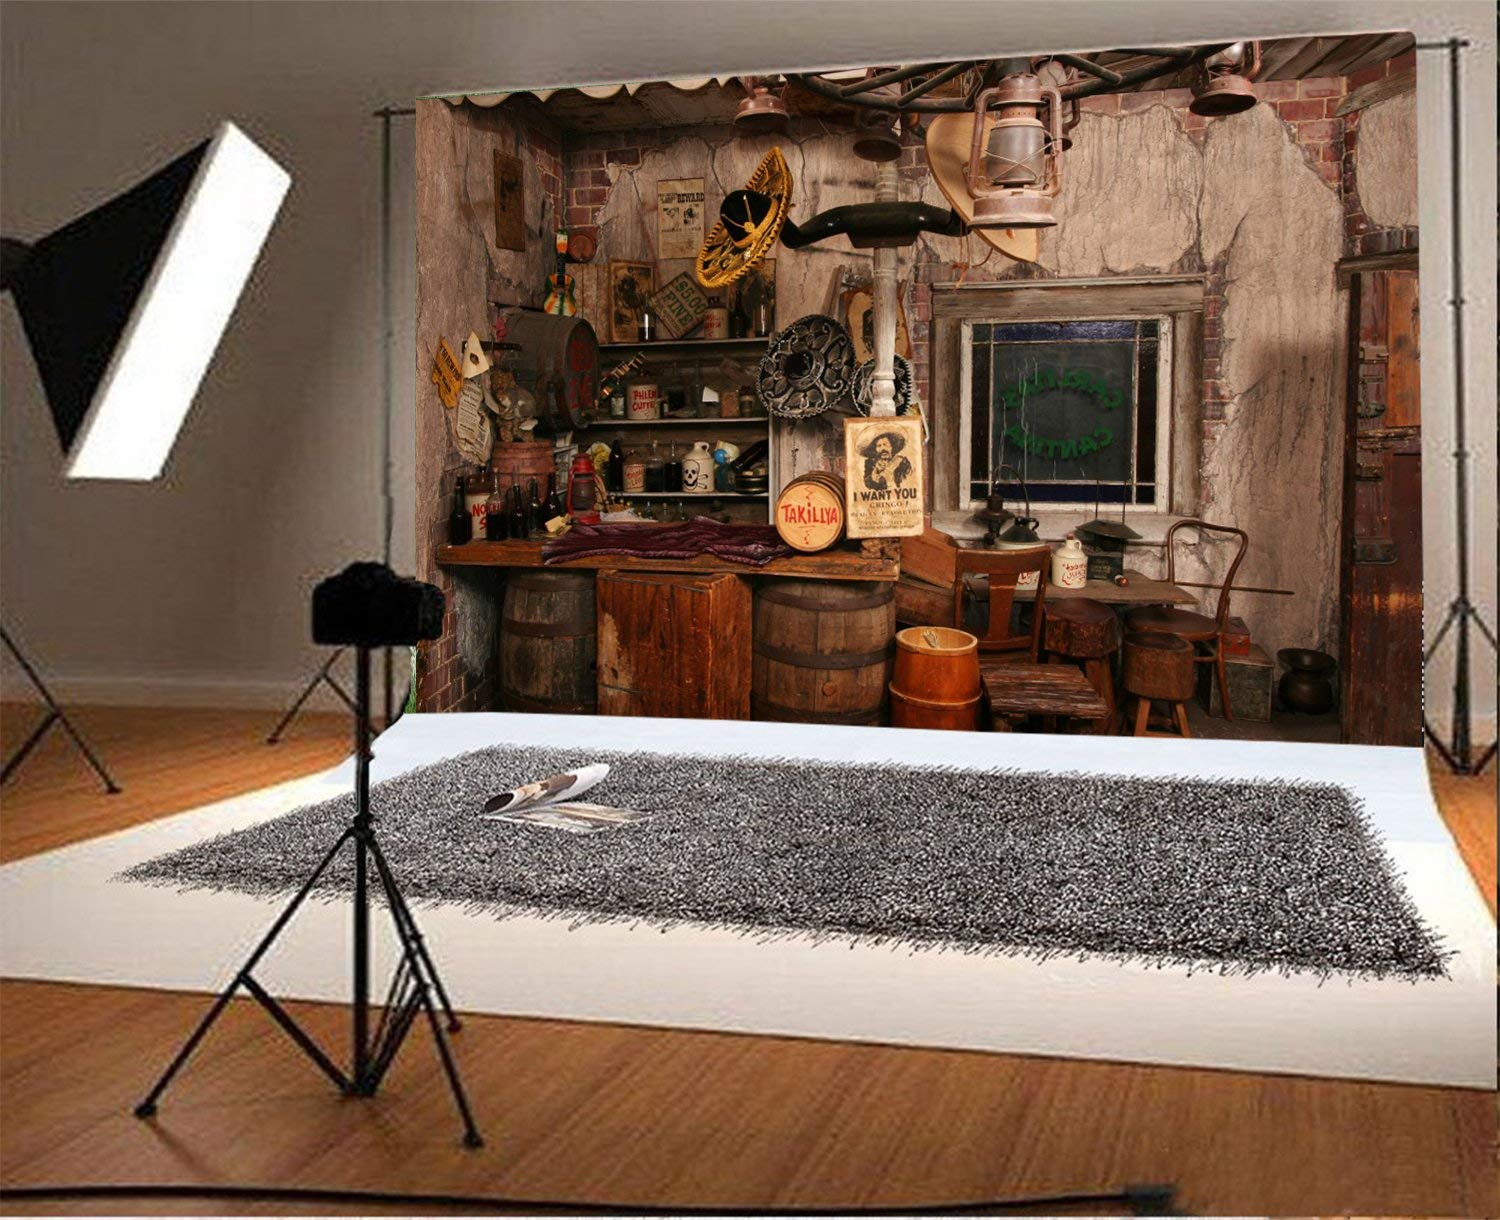 Laeacco 7x5FT Vinyl Photography Background Inside Replica Wild West Saloon Shabby House Interior Life Collection Scene Backdrops Personal Portraits Art Photographic Shooting Video Studio Props